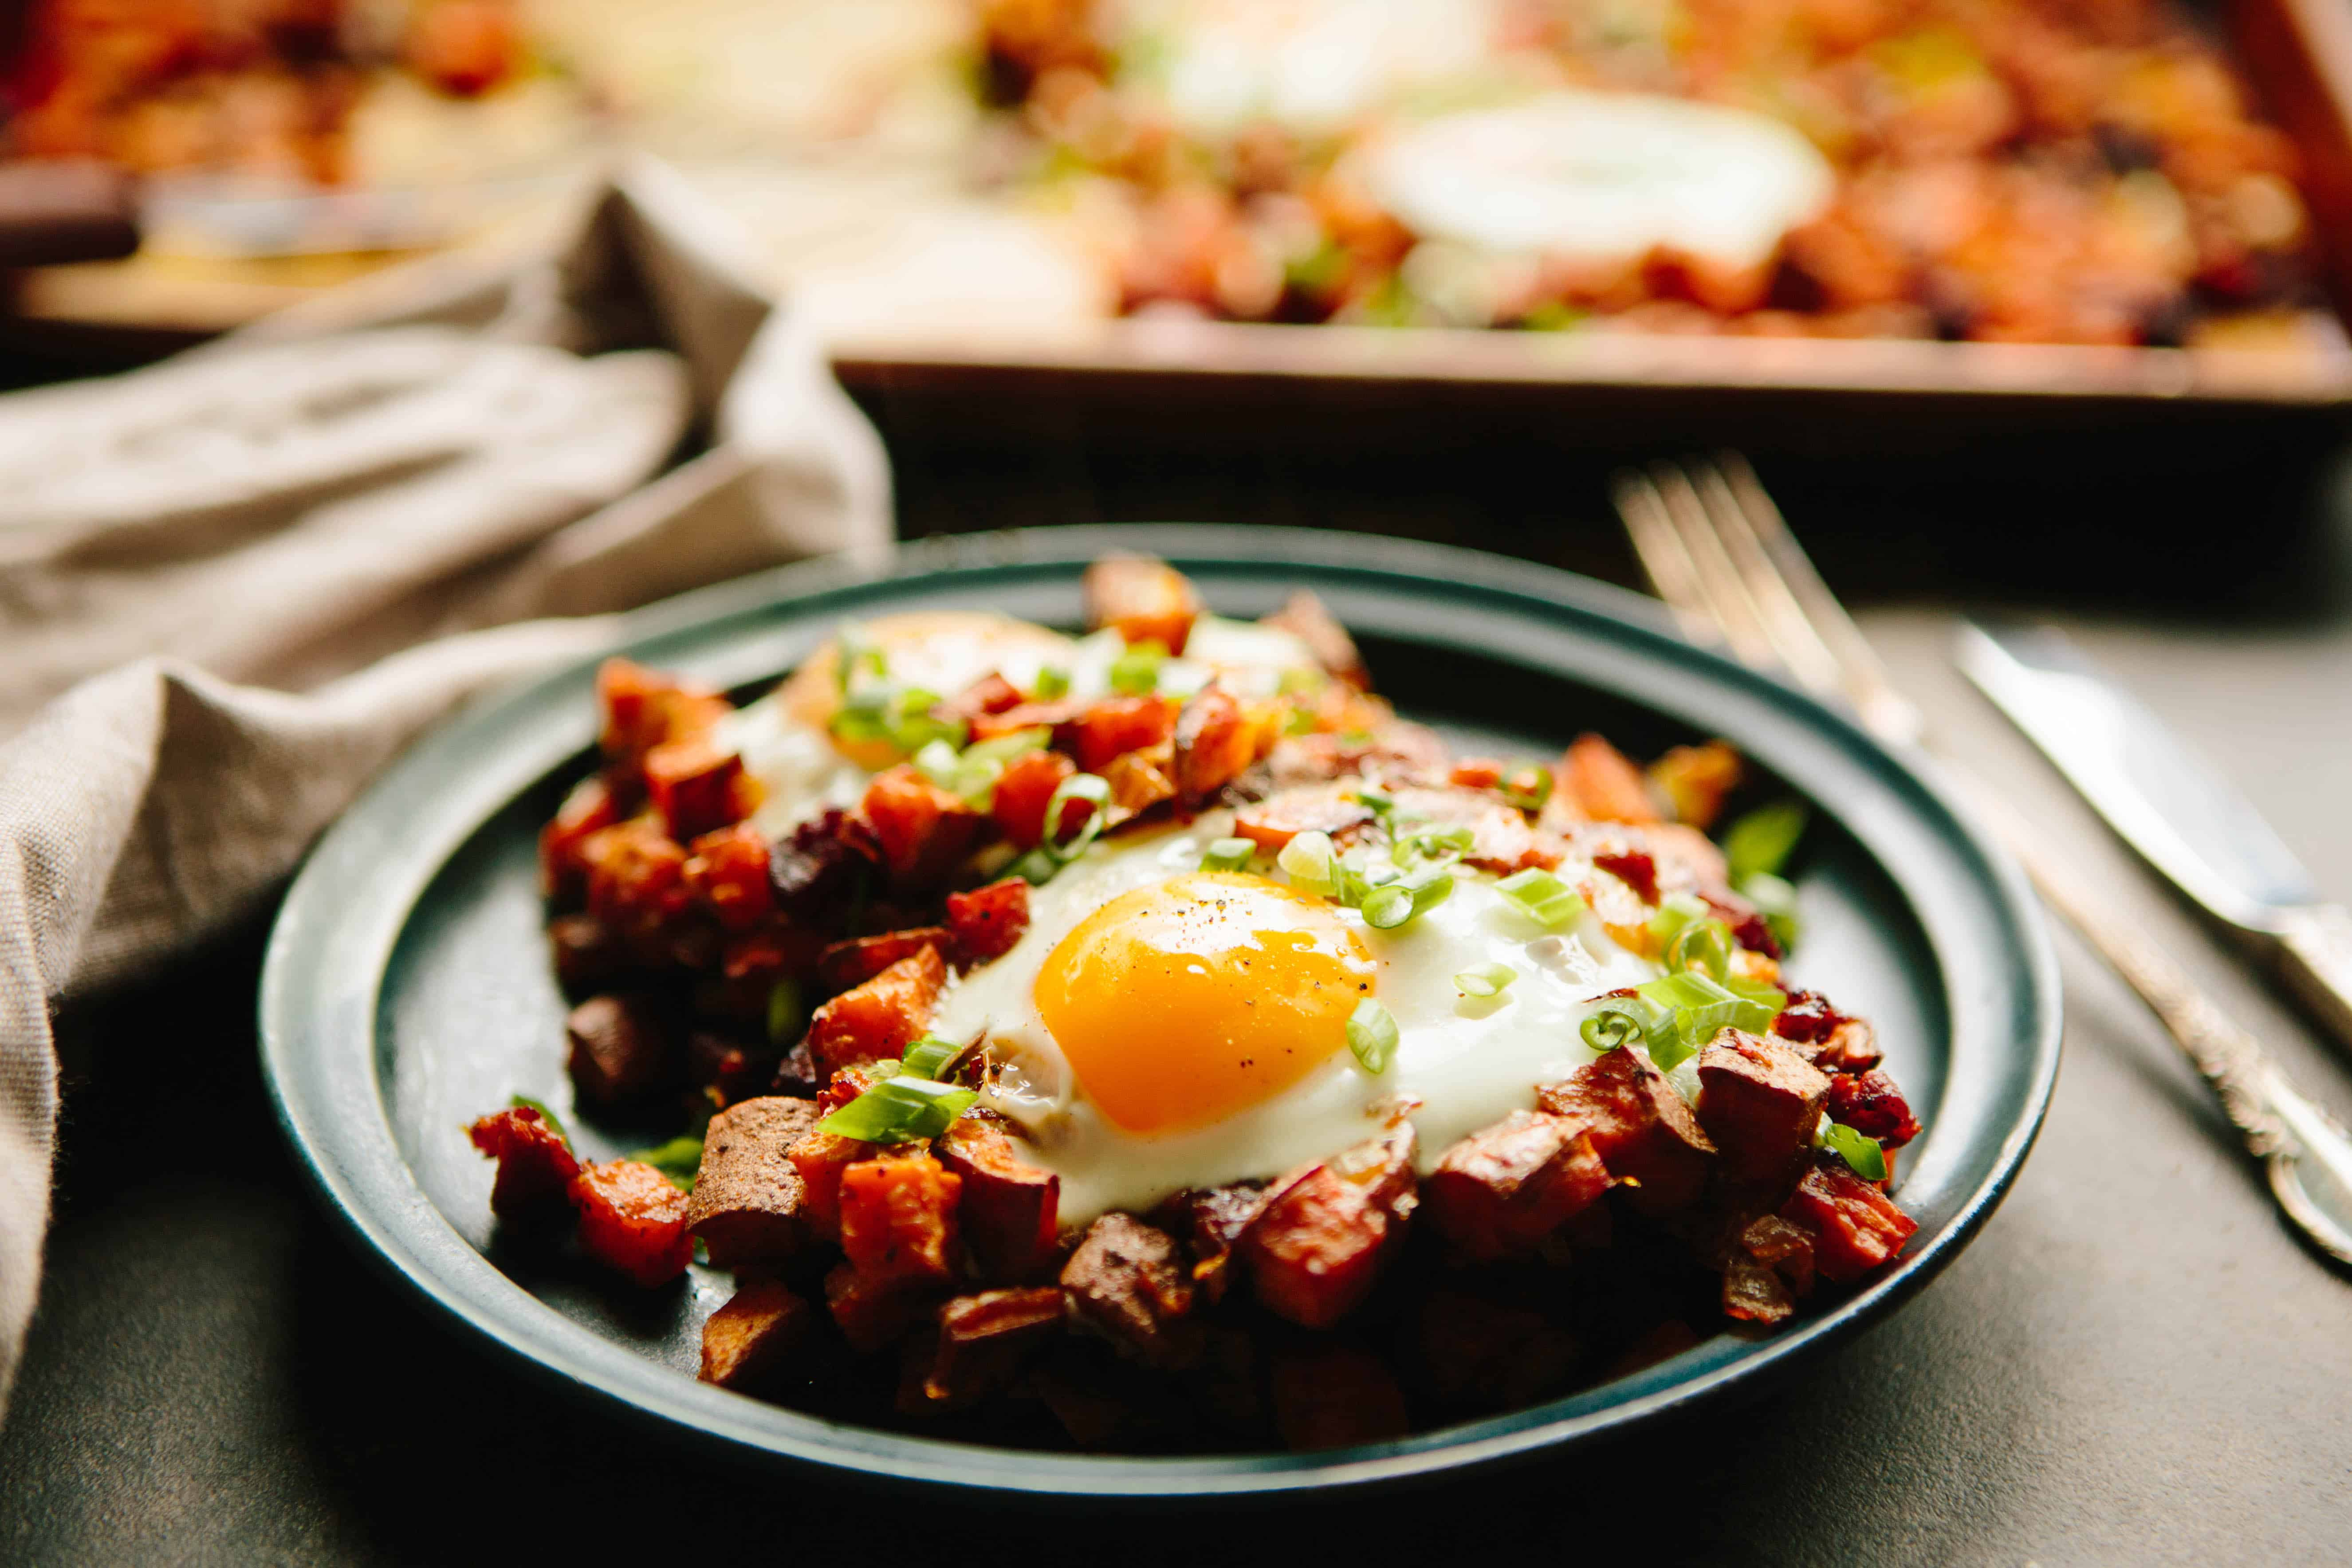 Dinner plate filled with sweet potato chorizo hash and runny eggs.